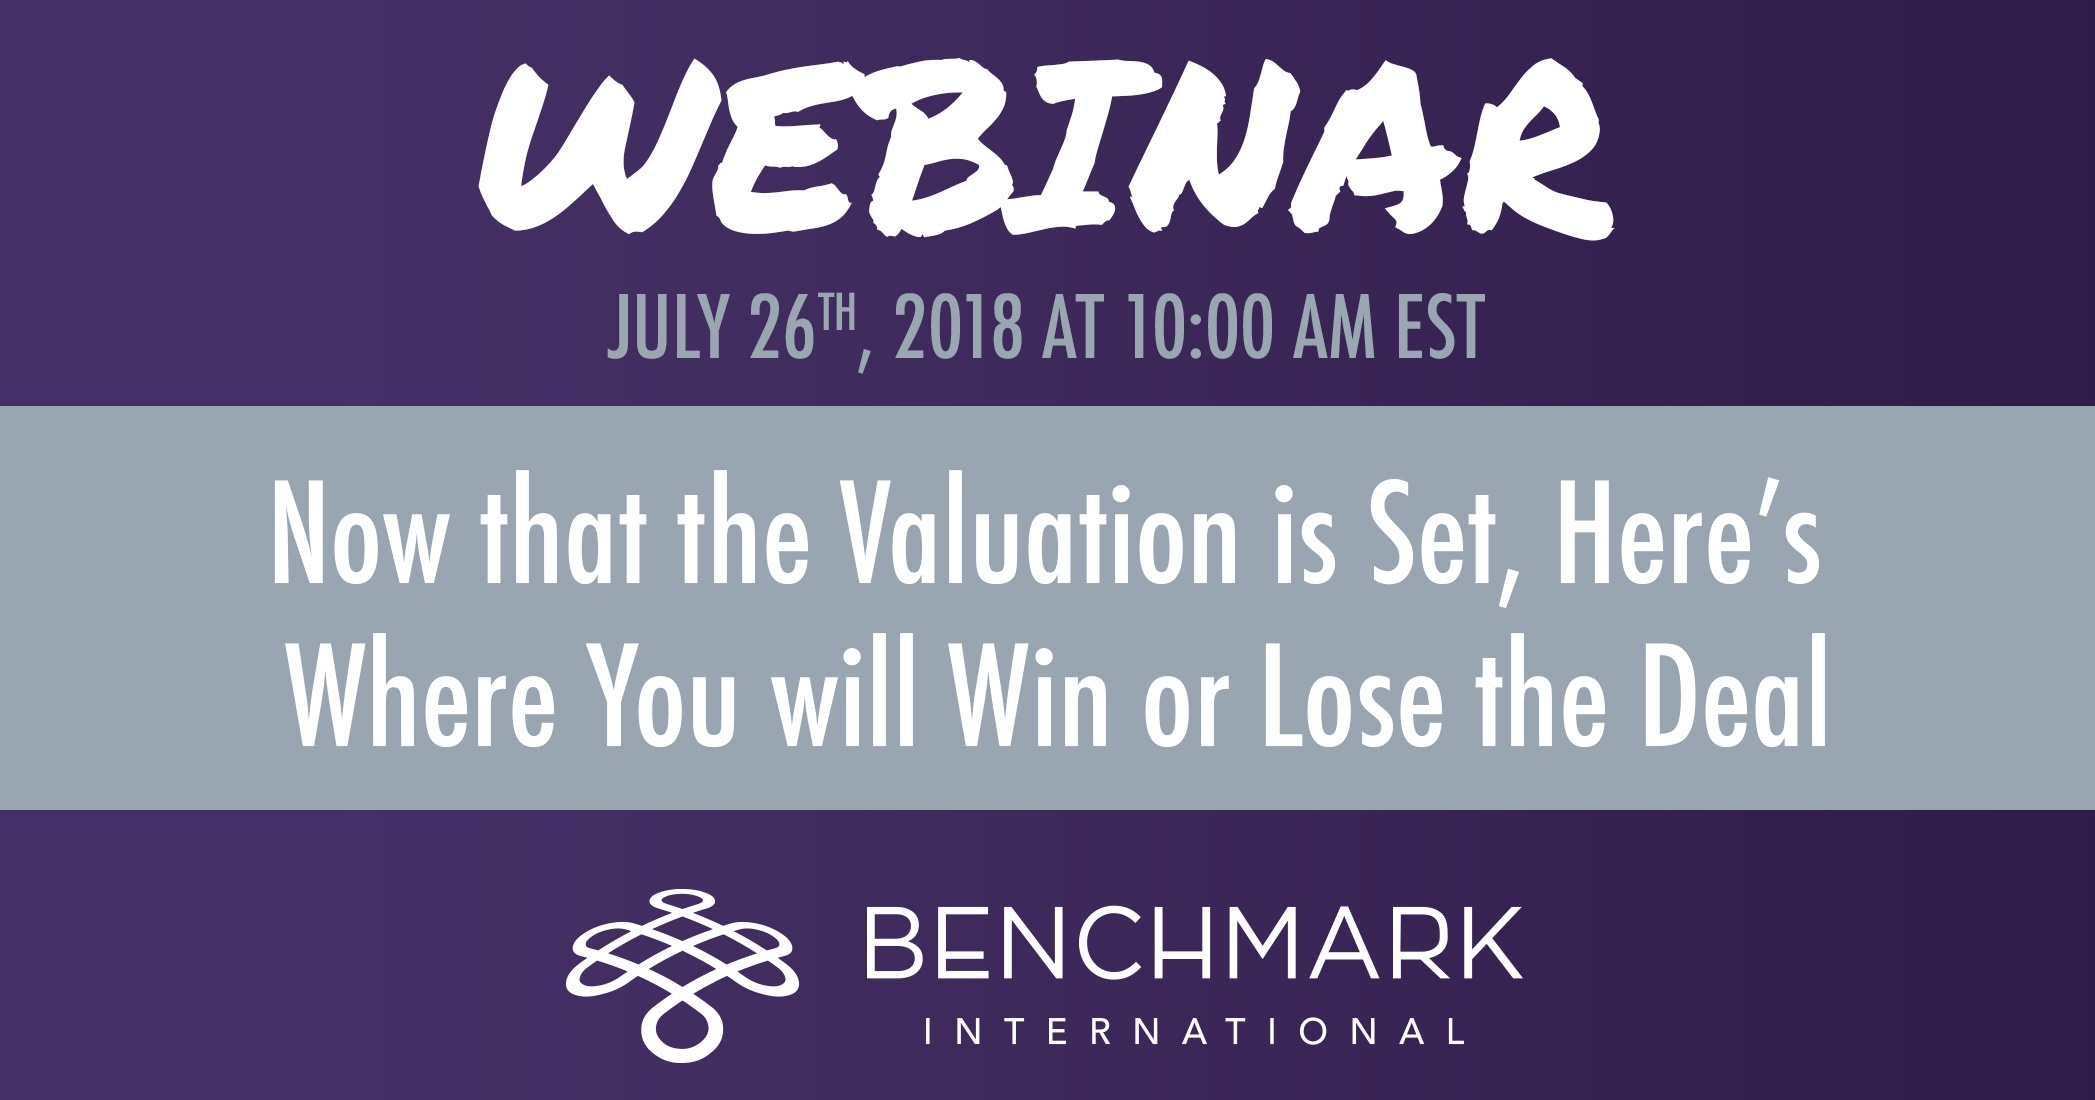 Upcoming M&A Webinar: Now that the Valuation is Set, Here's Where You will Win or Lose the Deal